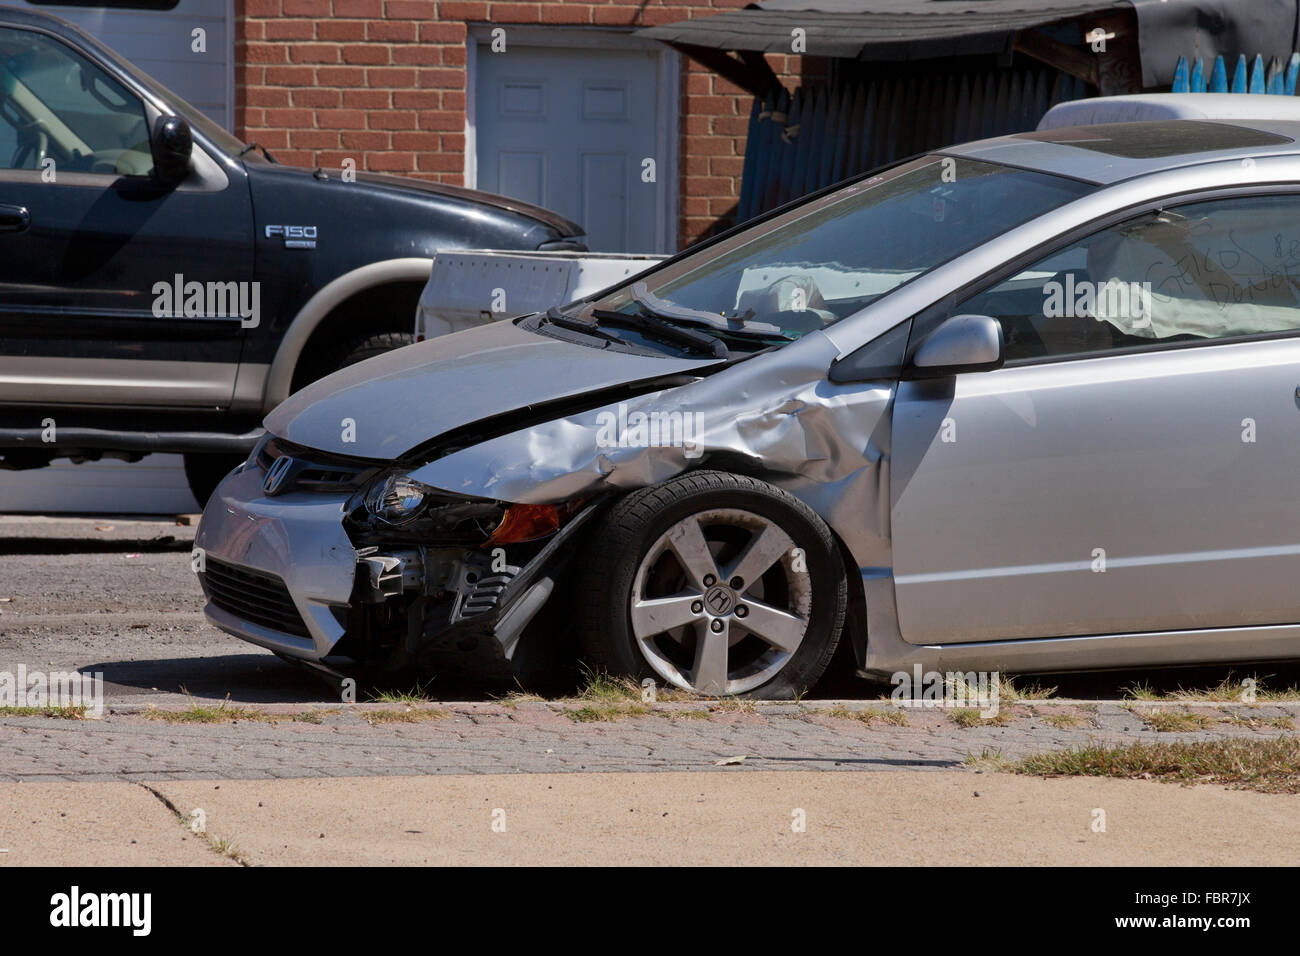 Car with front end accident damage - USA - Stock Image